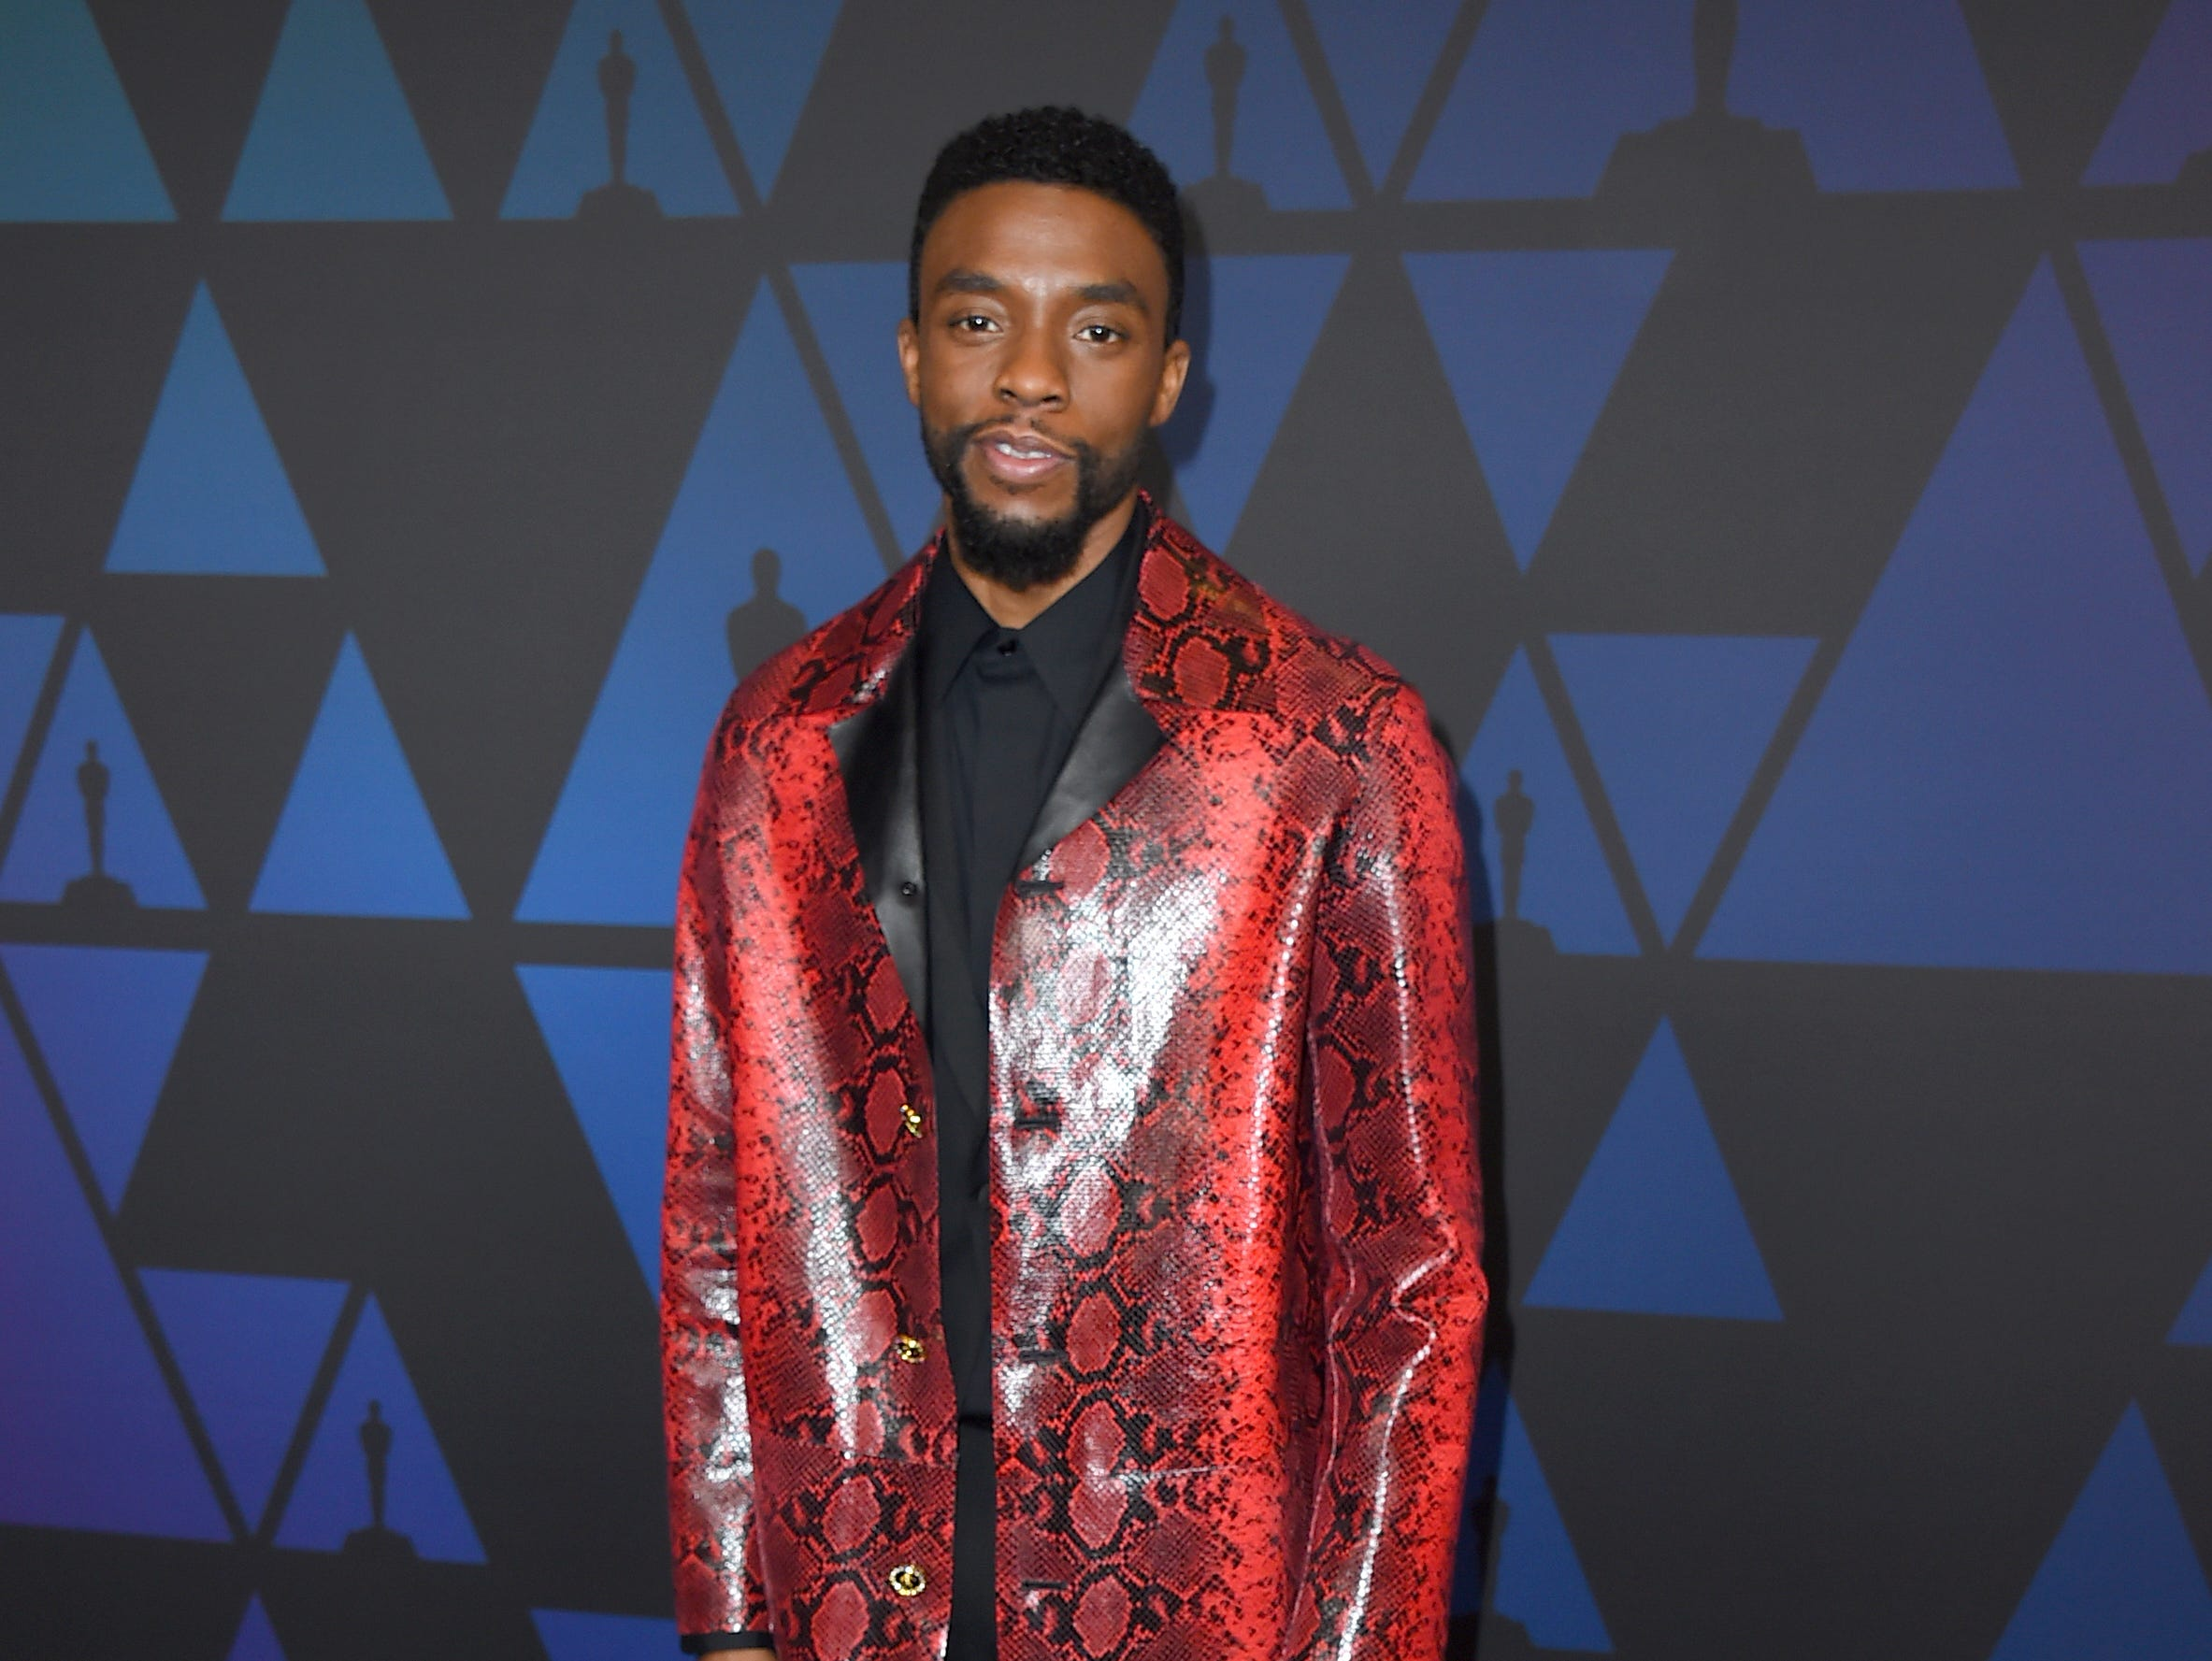 Chadwick Boseman arrives at the Governors Awards on Sunday, Nov. 18, 2018, at the Dolby Theatre in Los Angeles. (Photo by Jordan Strauss/Invision/AP) ORG XMIT: CAPM173